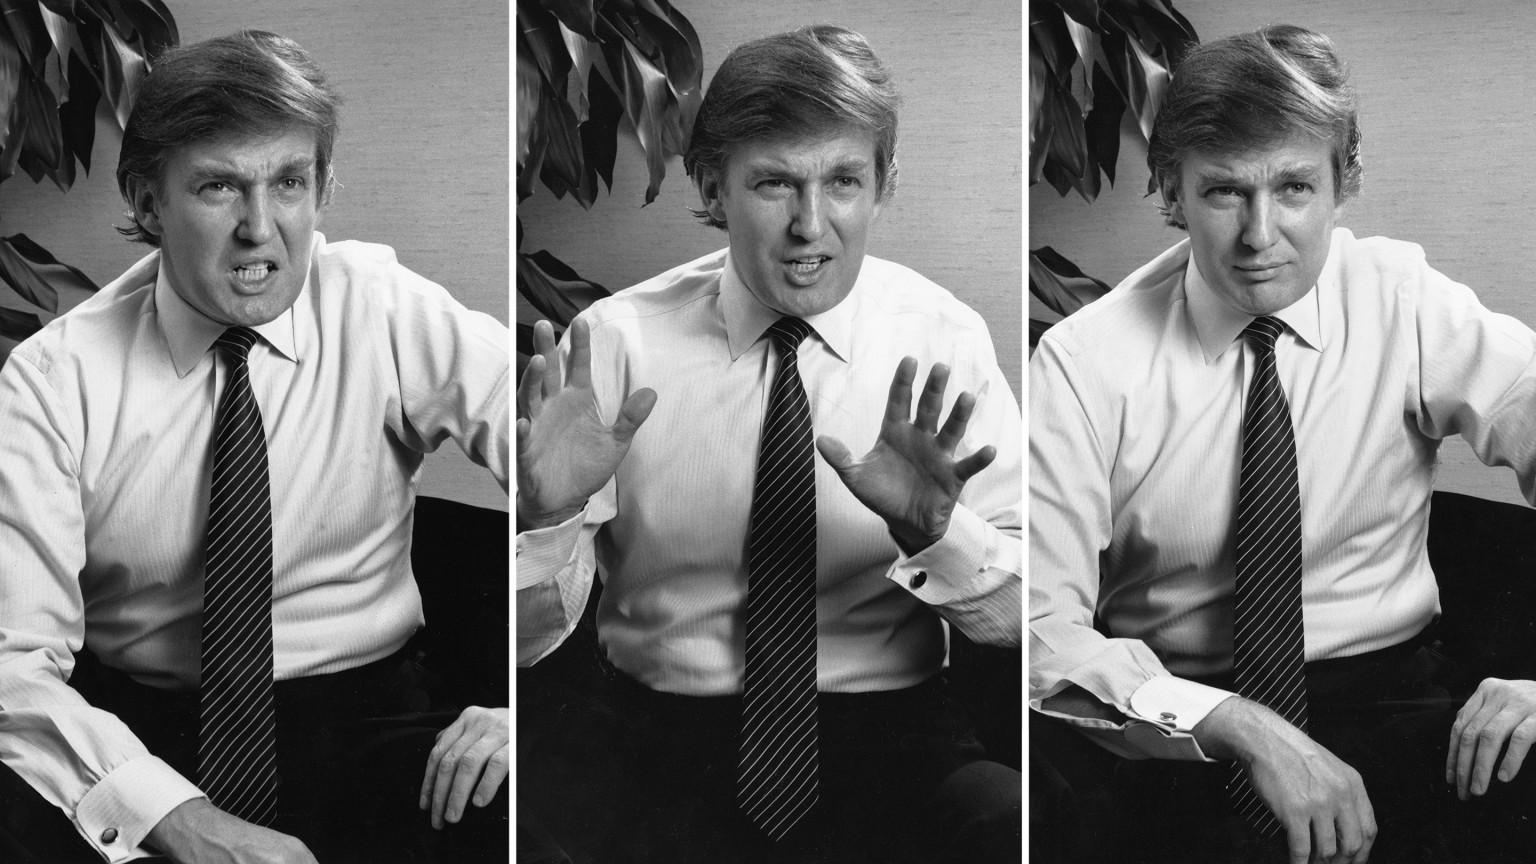 The 1990 Playboy Interview With Donald Trump